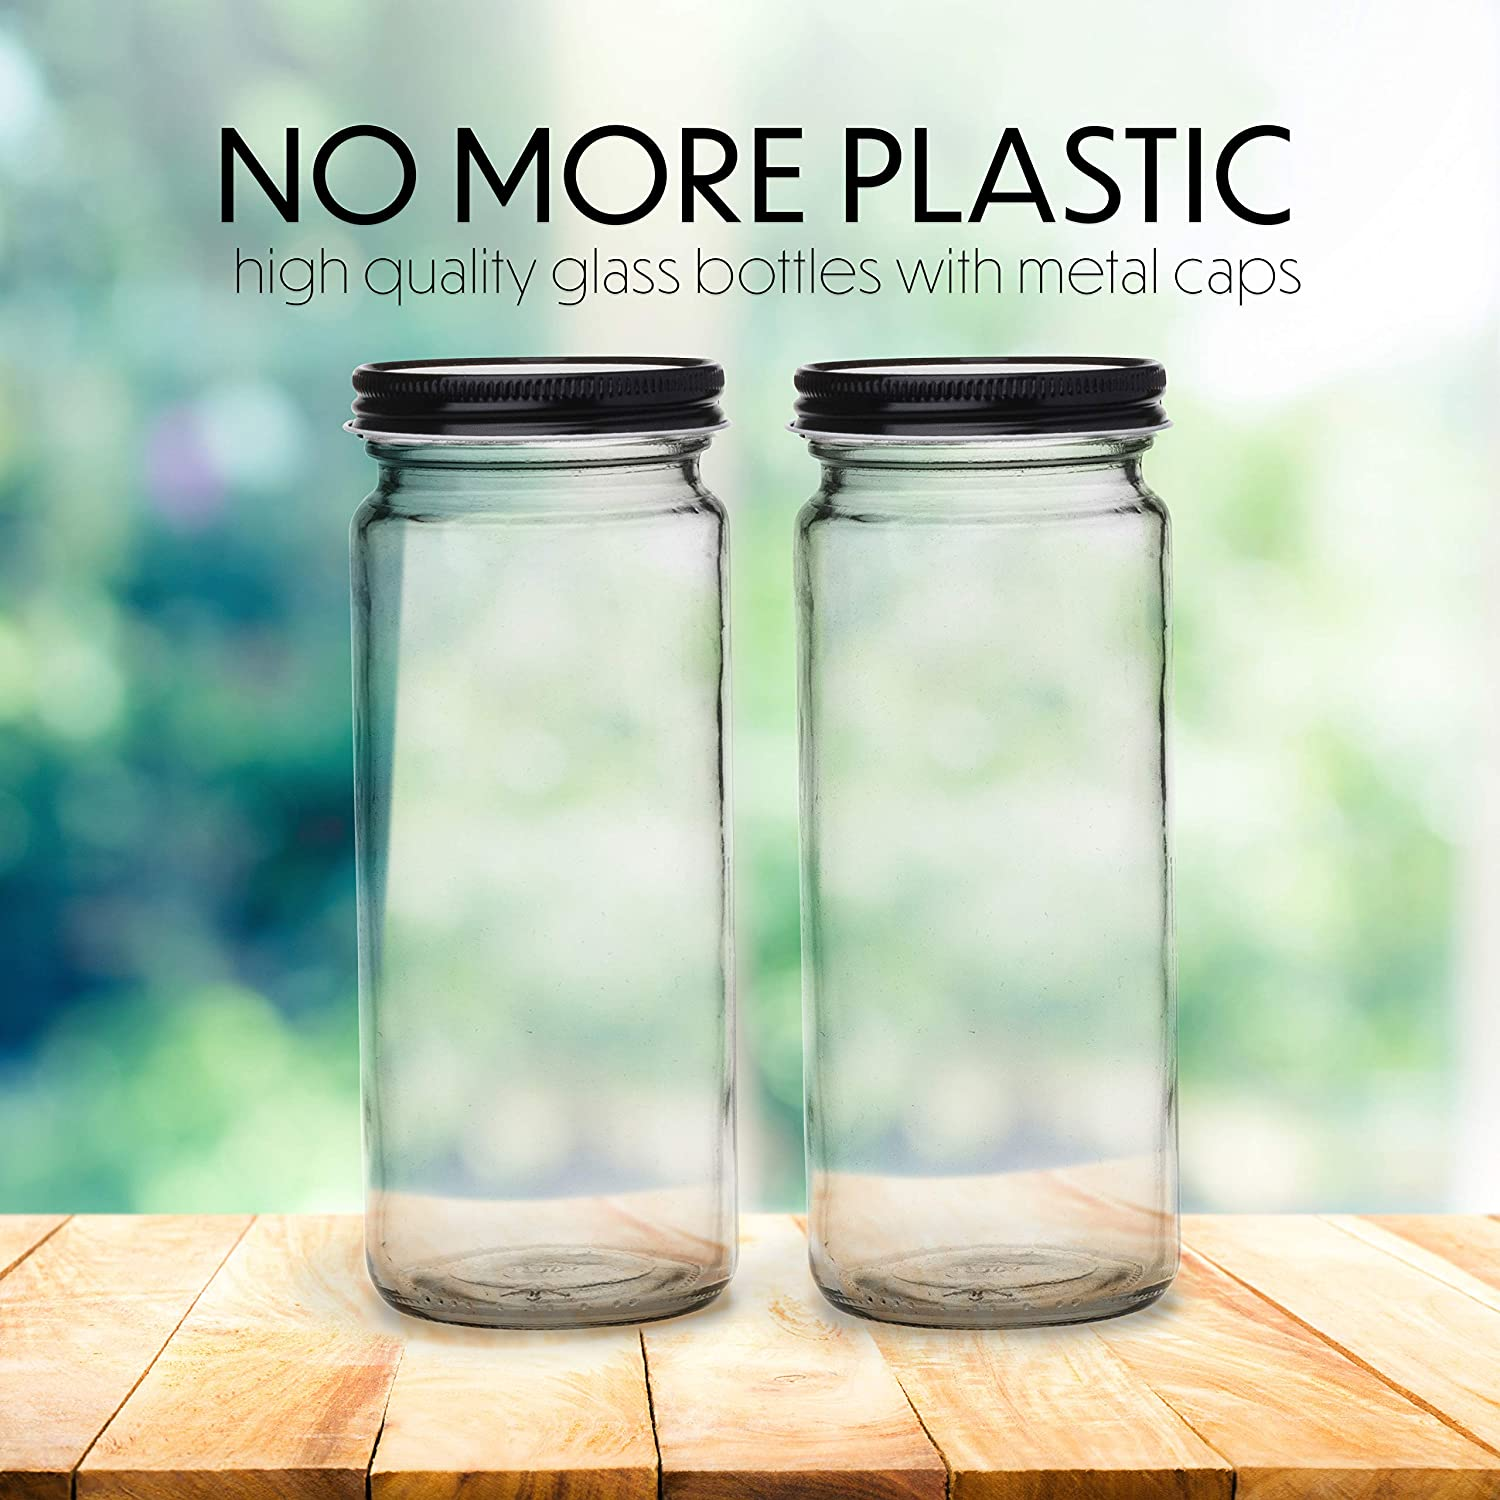 10 Juice Bottles Smoothie Cup Containers Metal Black Lids 16 OZ Glass Bottles with Caps